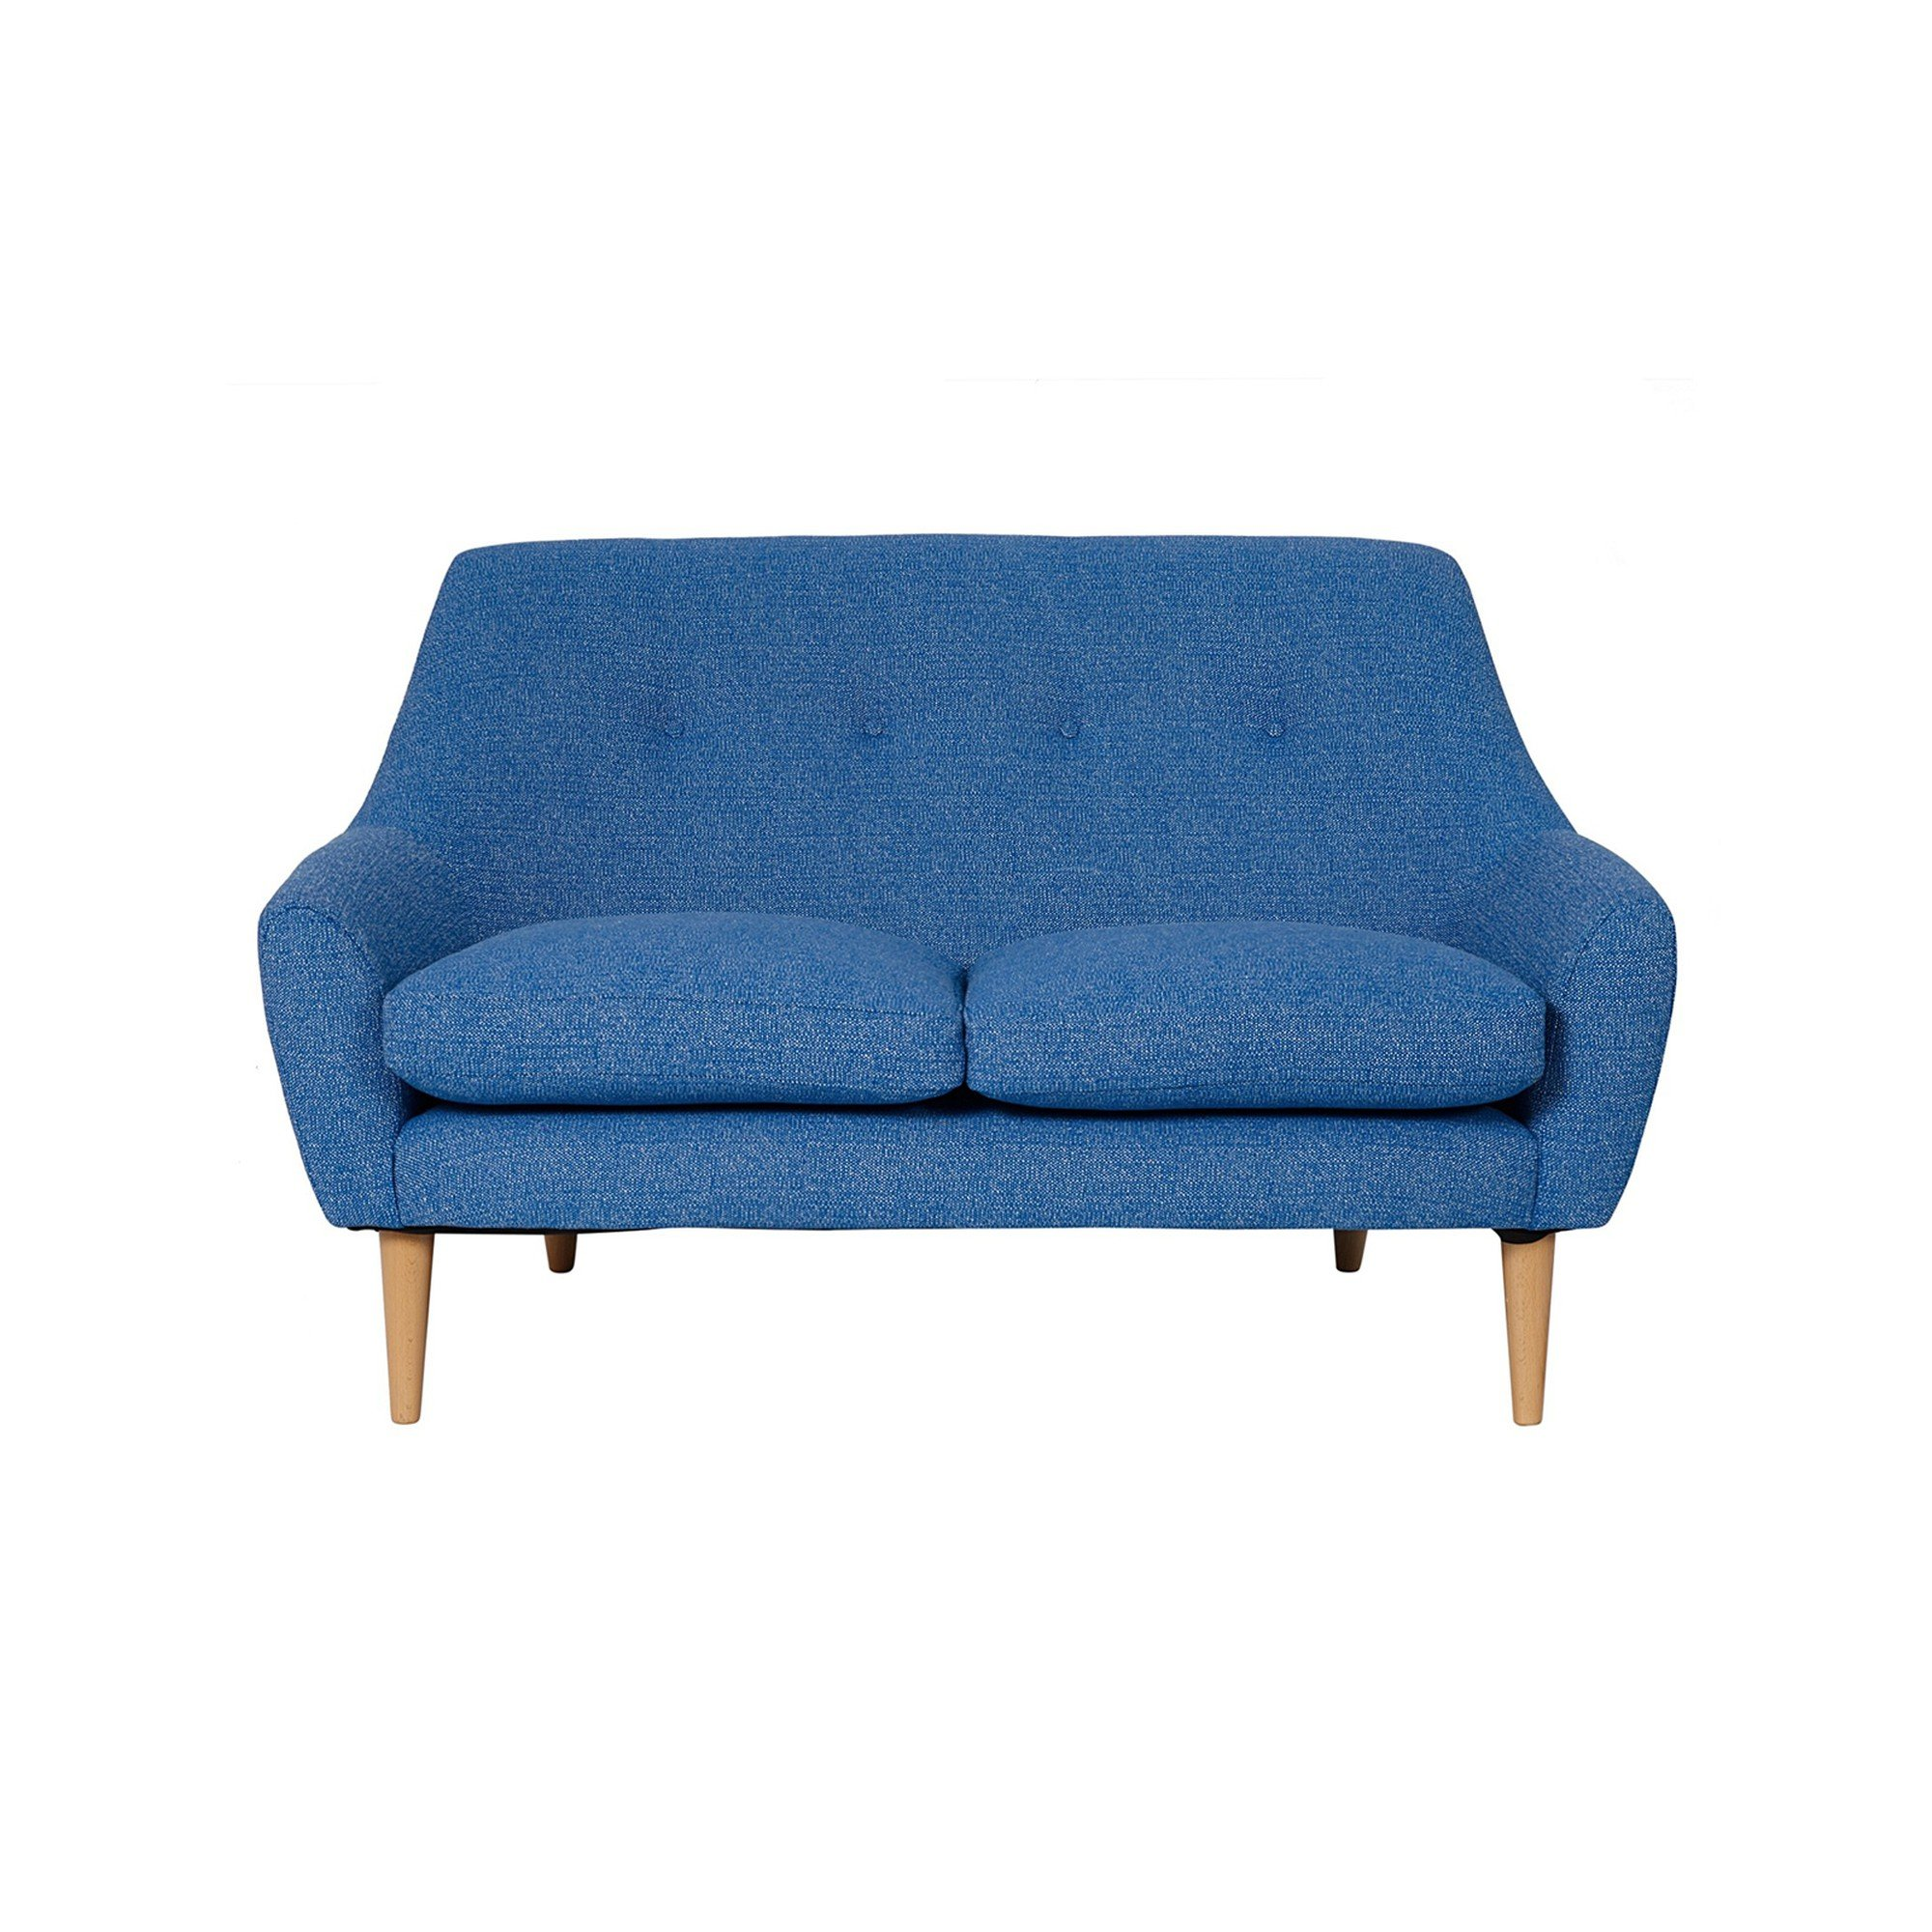 1958 Two Seater Sofa